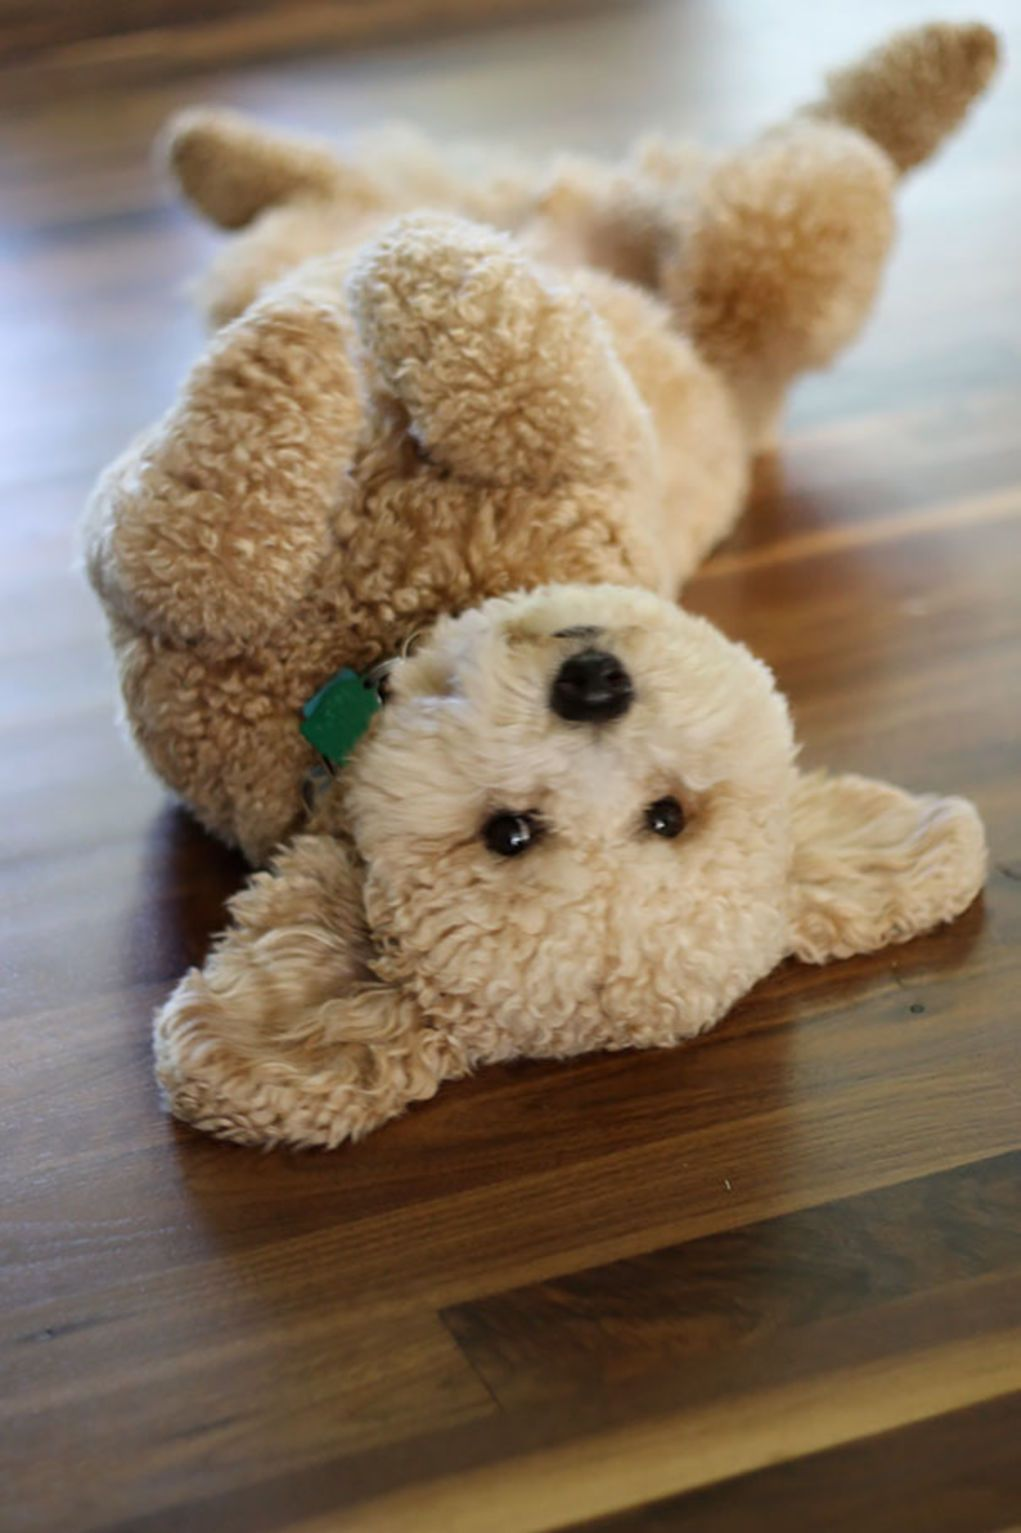 Great Doodle Chubby Adorable Dog - 84bfd78cee6b5bcc5b1b039f84f33d04  2018_459590  .jpg